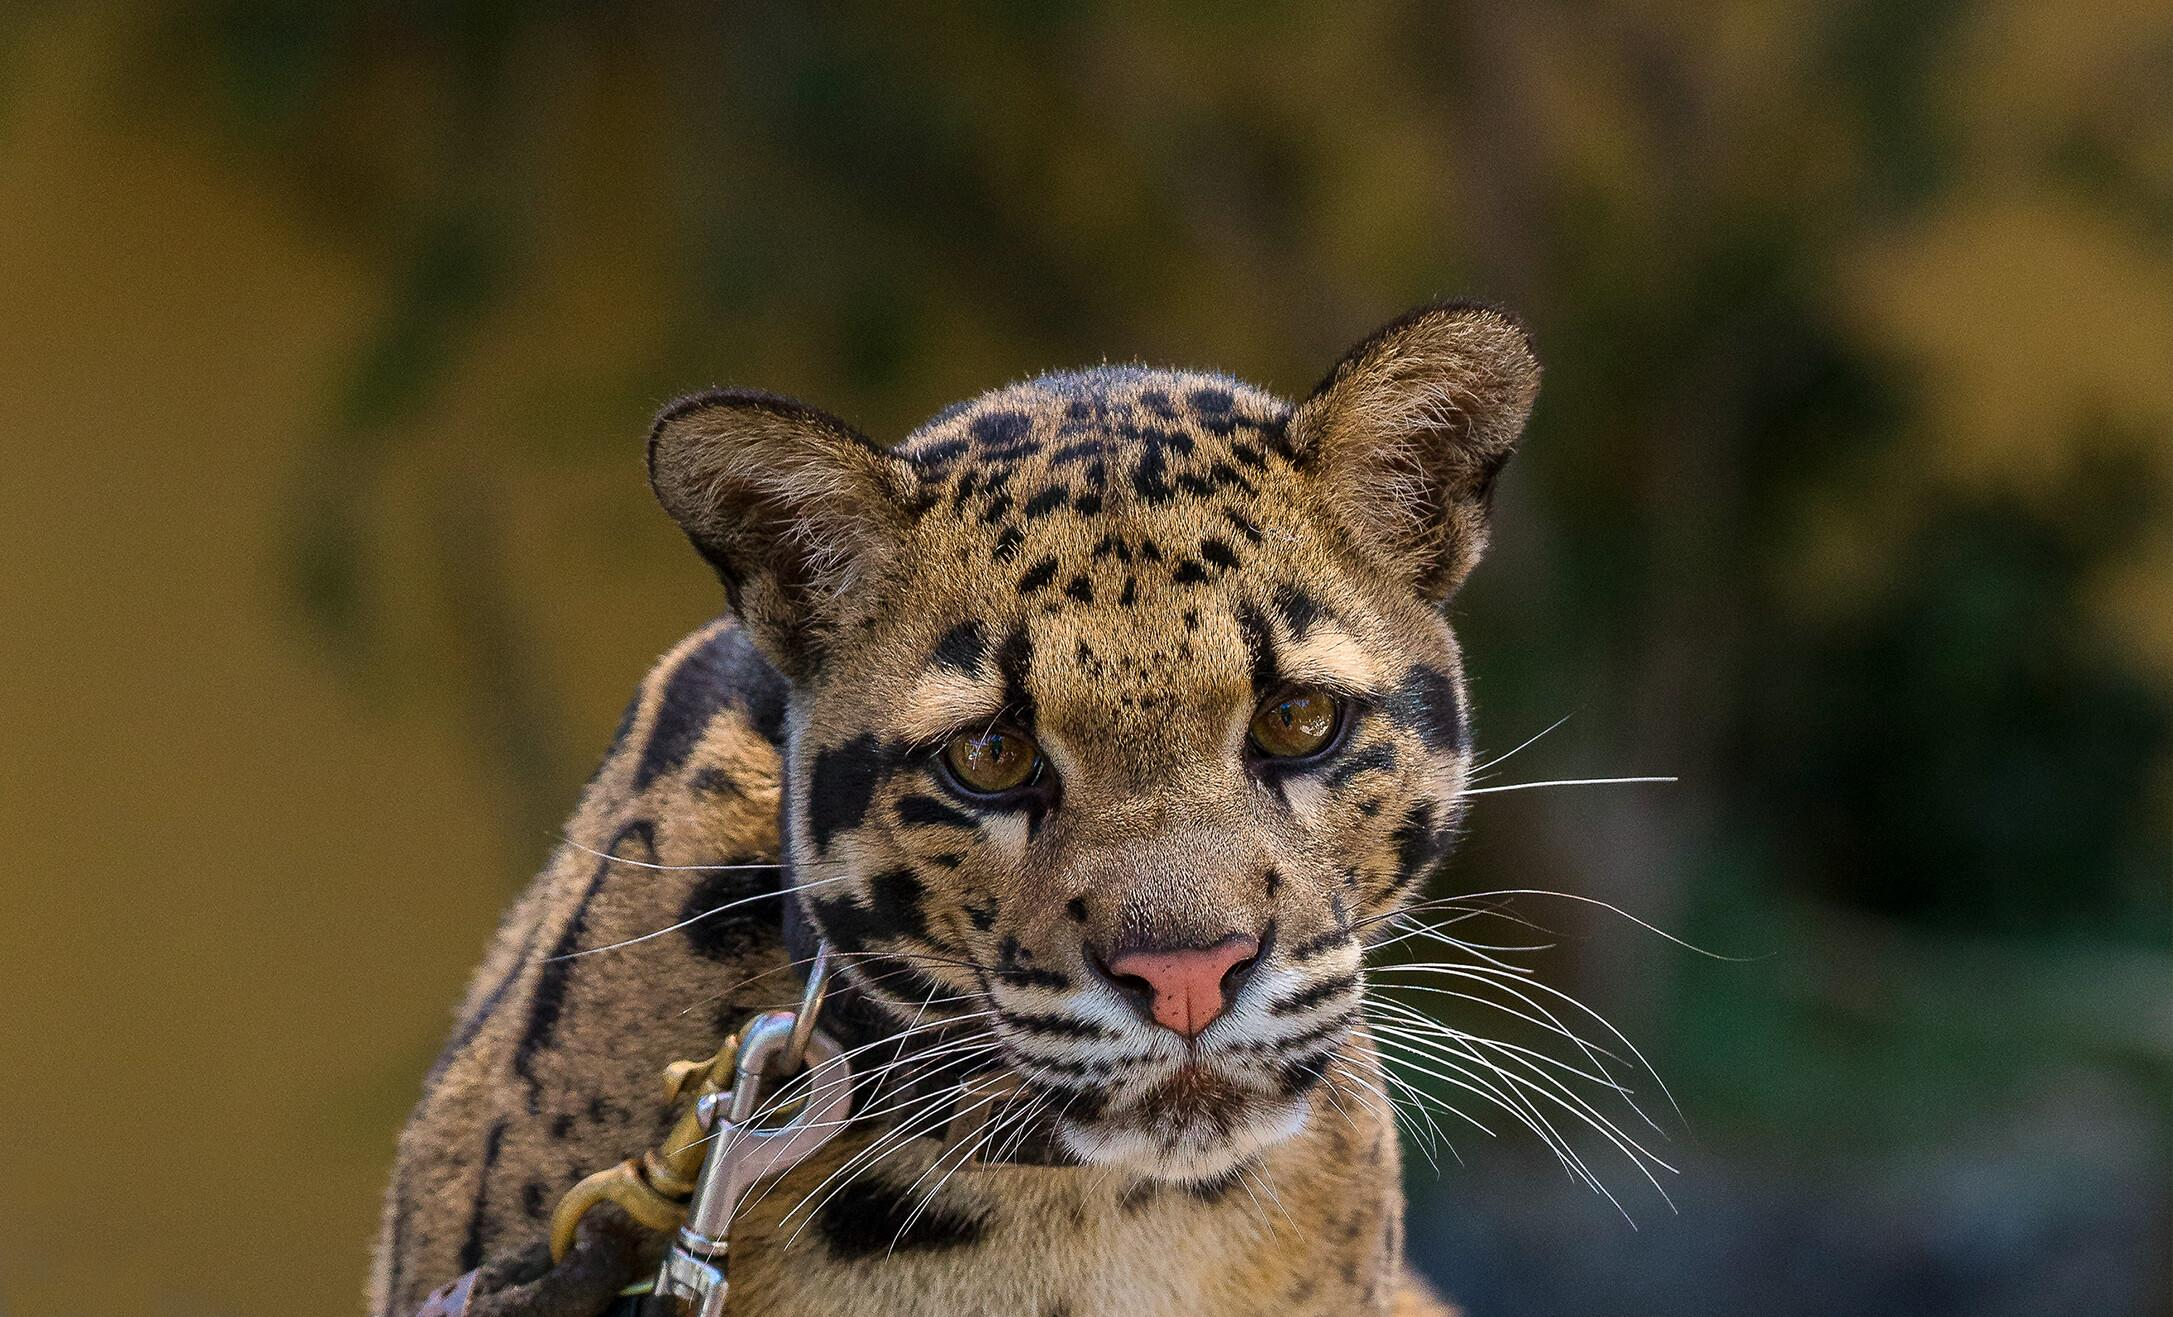 Clouded leopard staring straight at screen.